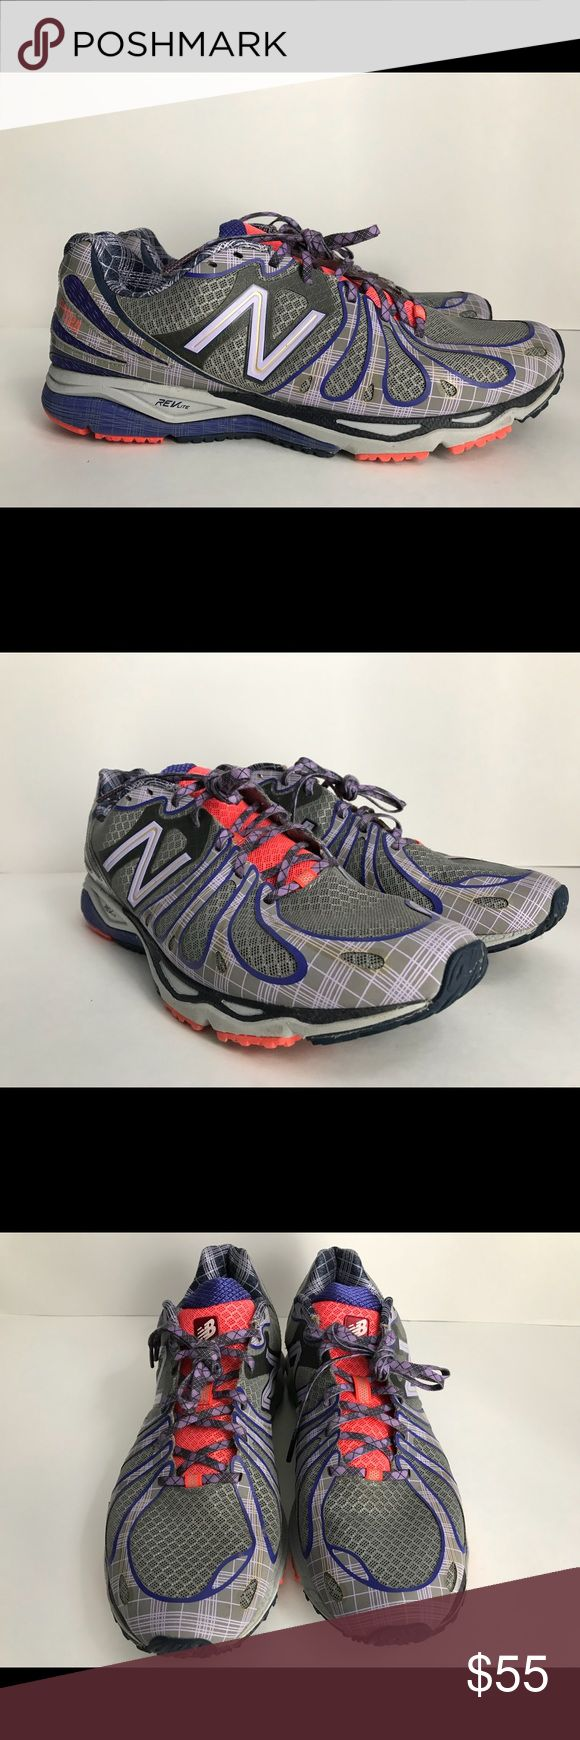 New balance London marathon running sneaker Size 11  Great condition  100% authentic  No box New Balance Shoes Athletic Shoes